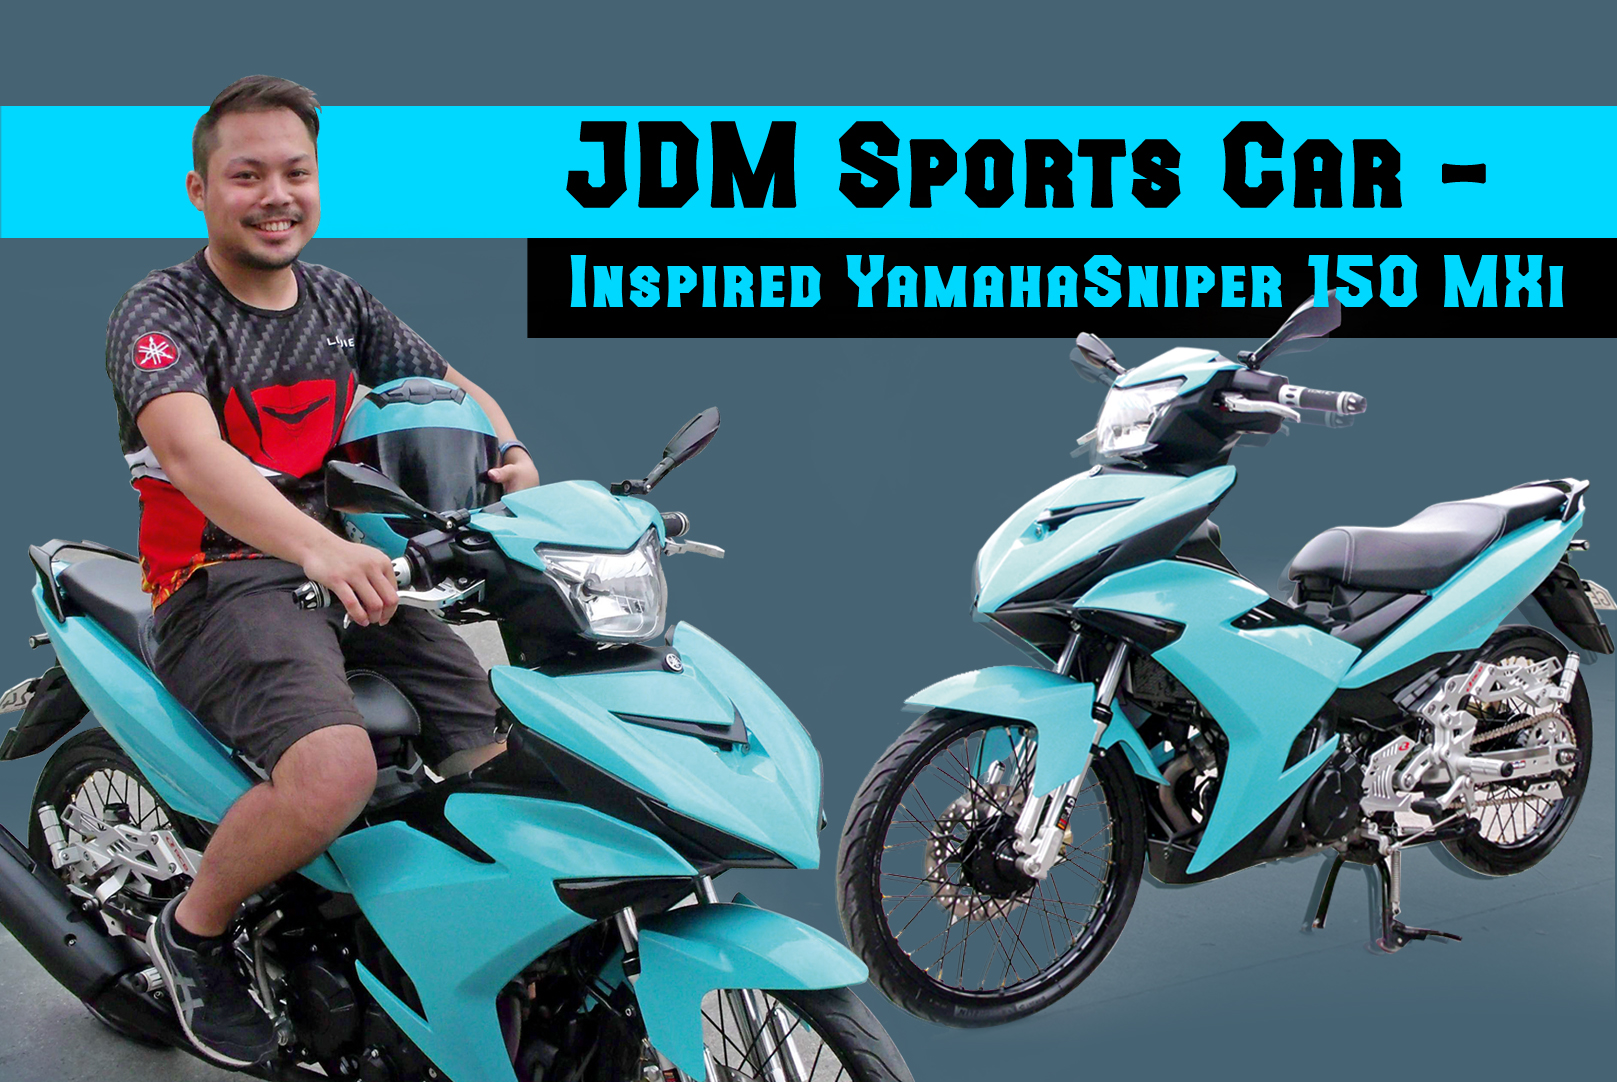 JDM Sports Car -Inspired Yamaha Sniper 150 MXi from Cebu City